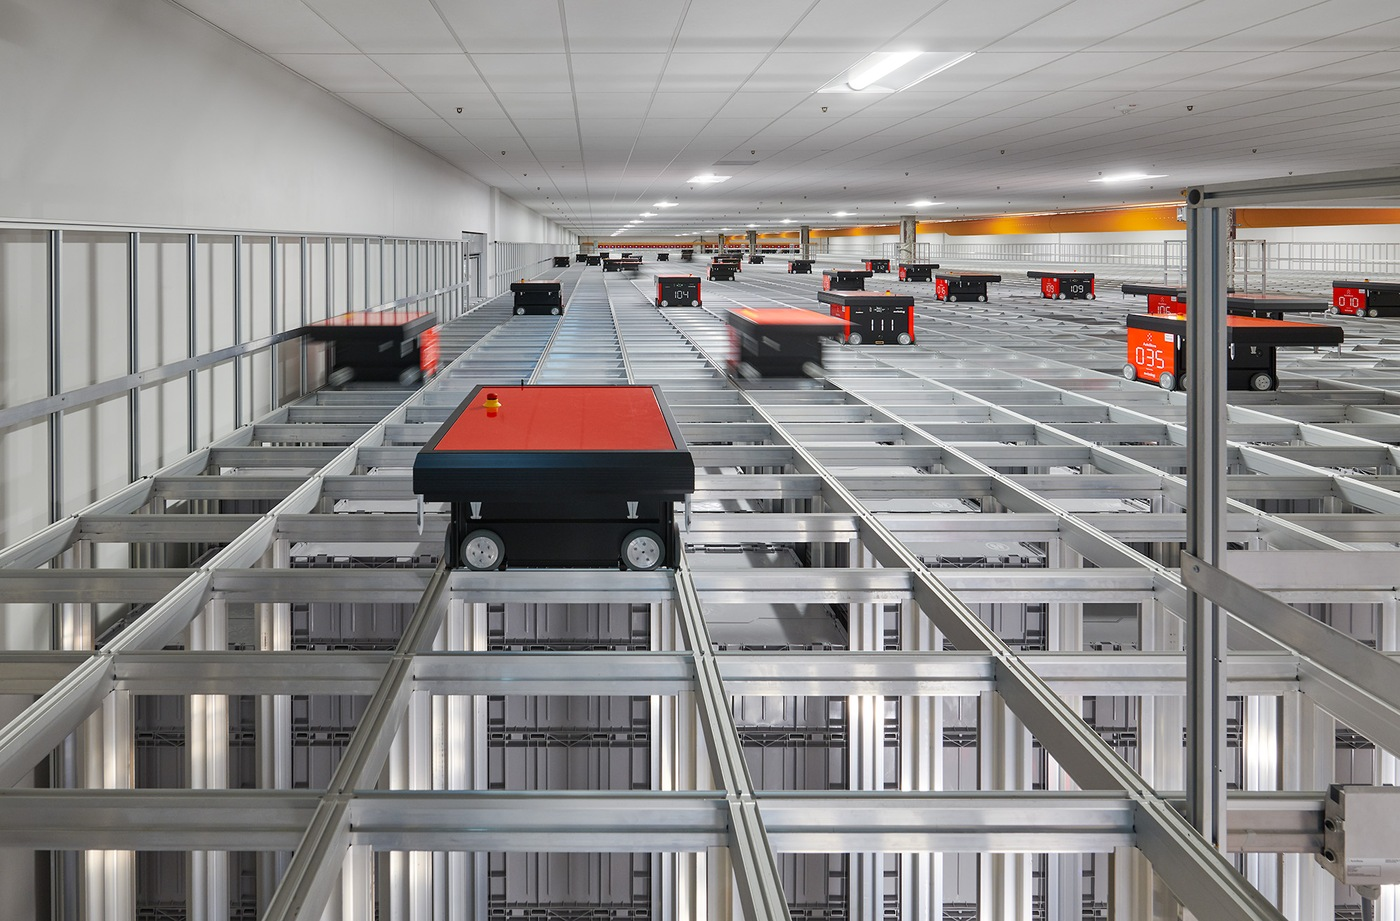 Robots deposit and retrieve files at Central Records Complex in Winchester, Virginia. The $135 million complex opened in 2020  to house FBI files.